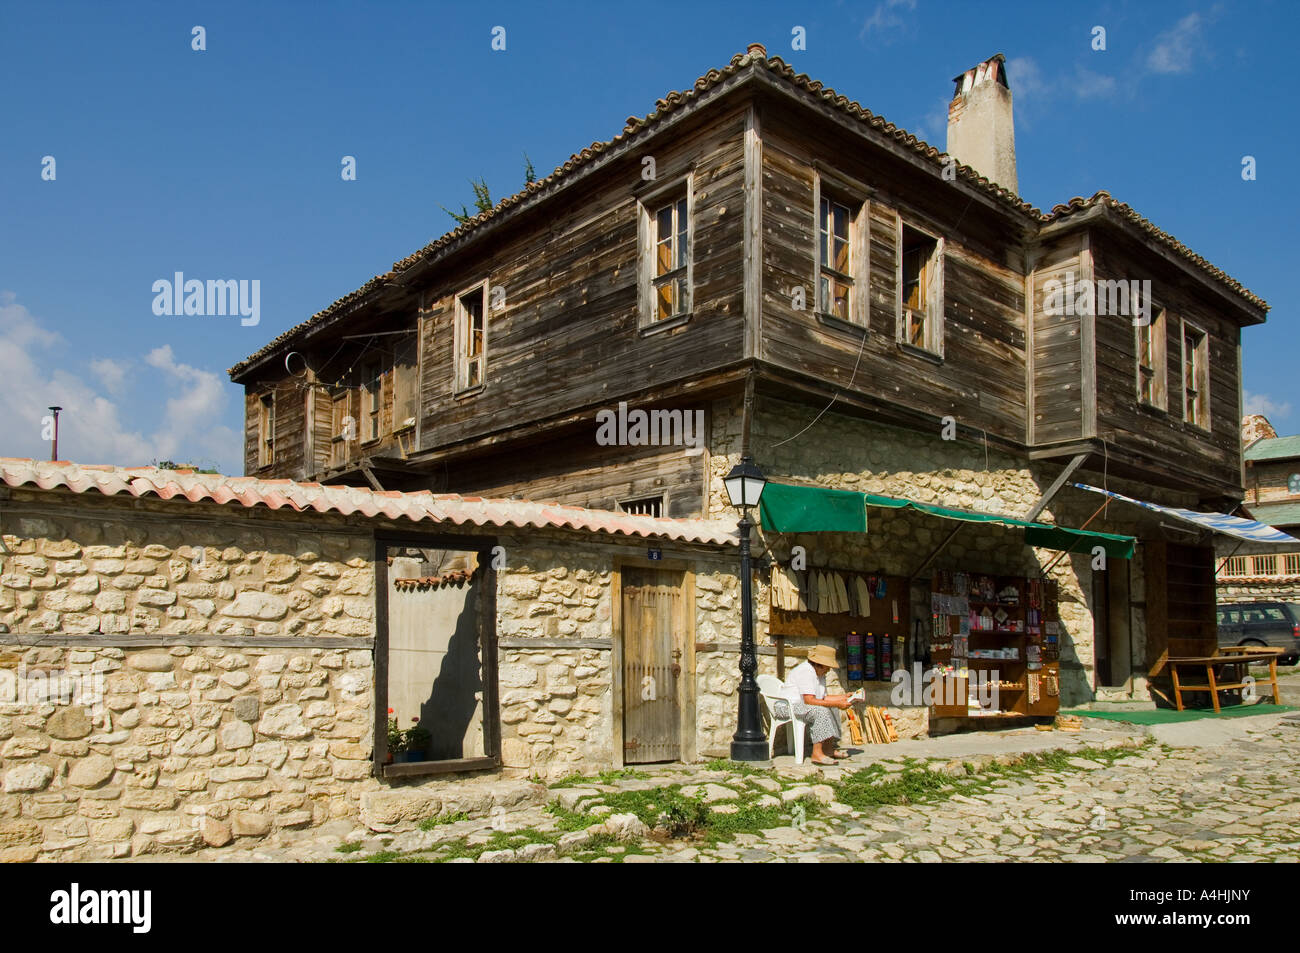 Typical Wooden And Stone House In Old Nessebar Black Sea Coast Bulgaria  East Europe